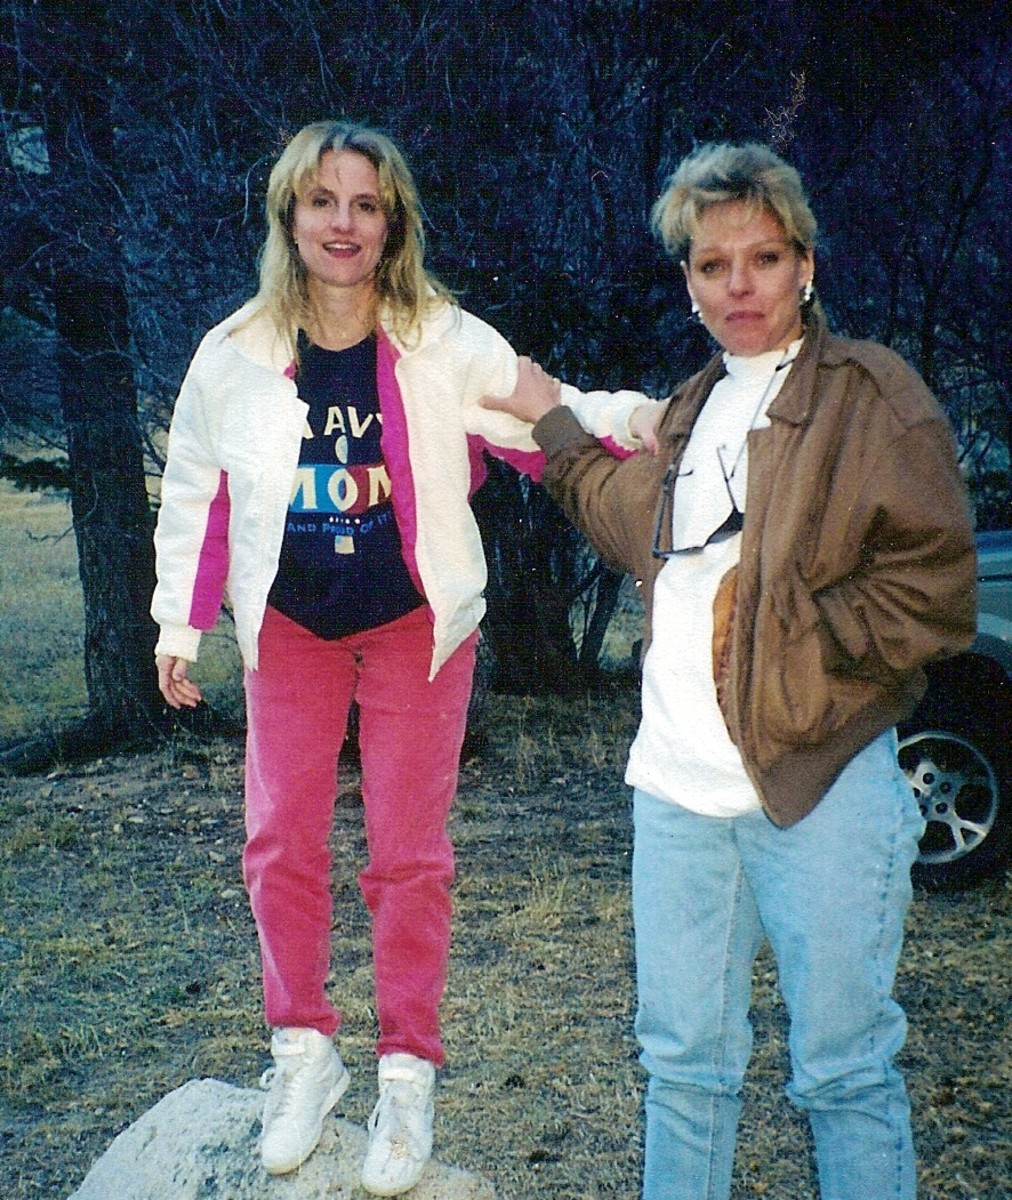 Me & Tami in Colorado in 1998. Haven't seen you in 9 years sister, but I still love ya!